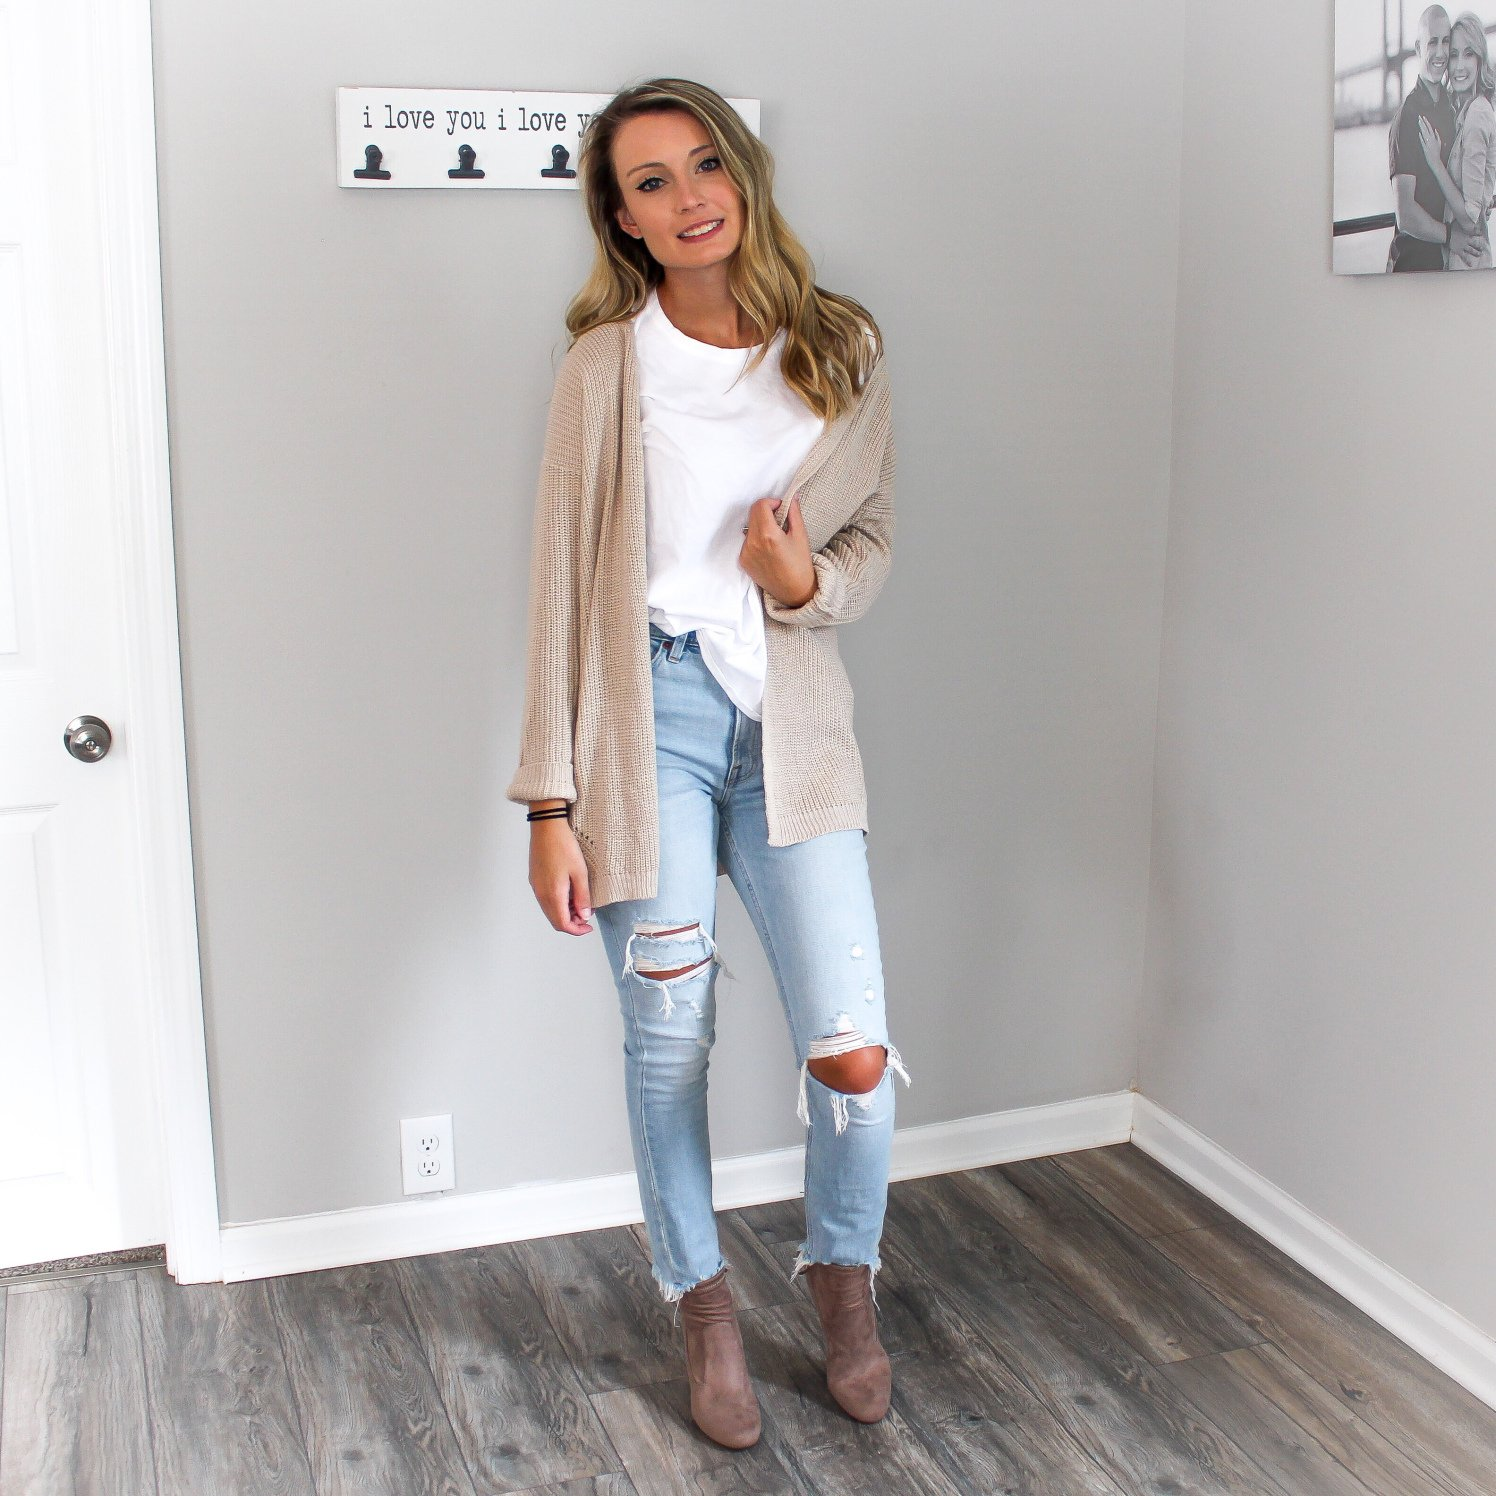 Fall fashion from Marshall's for under $20